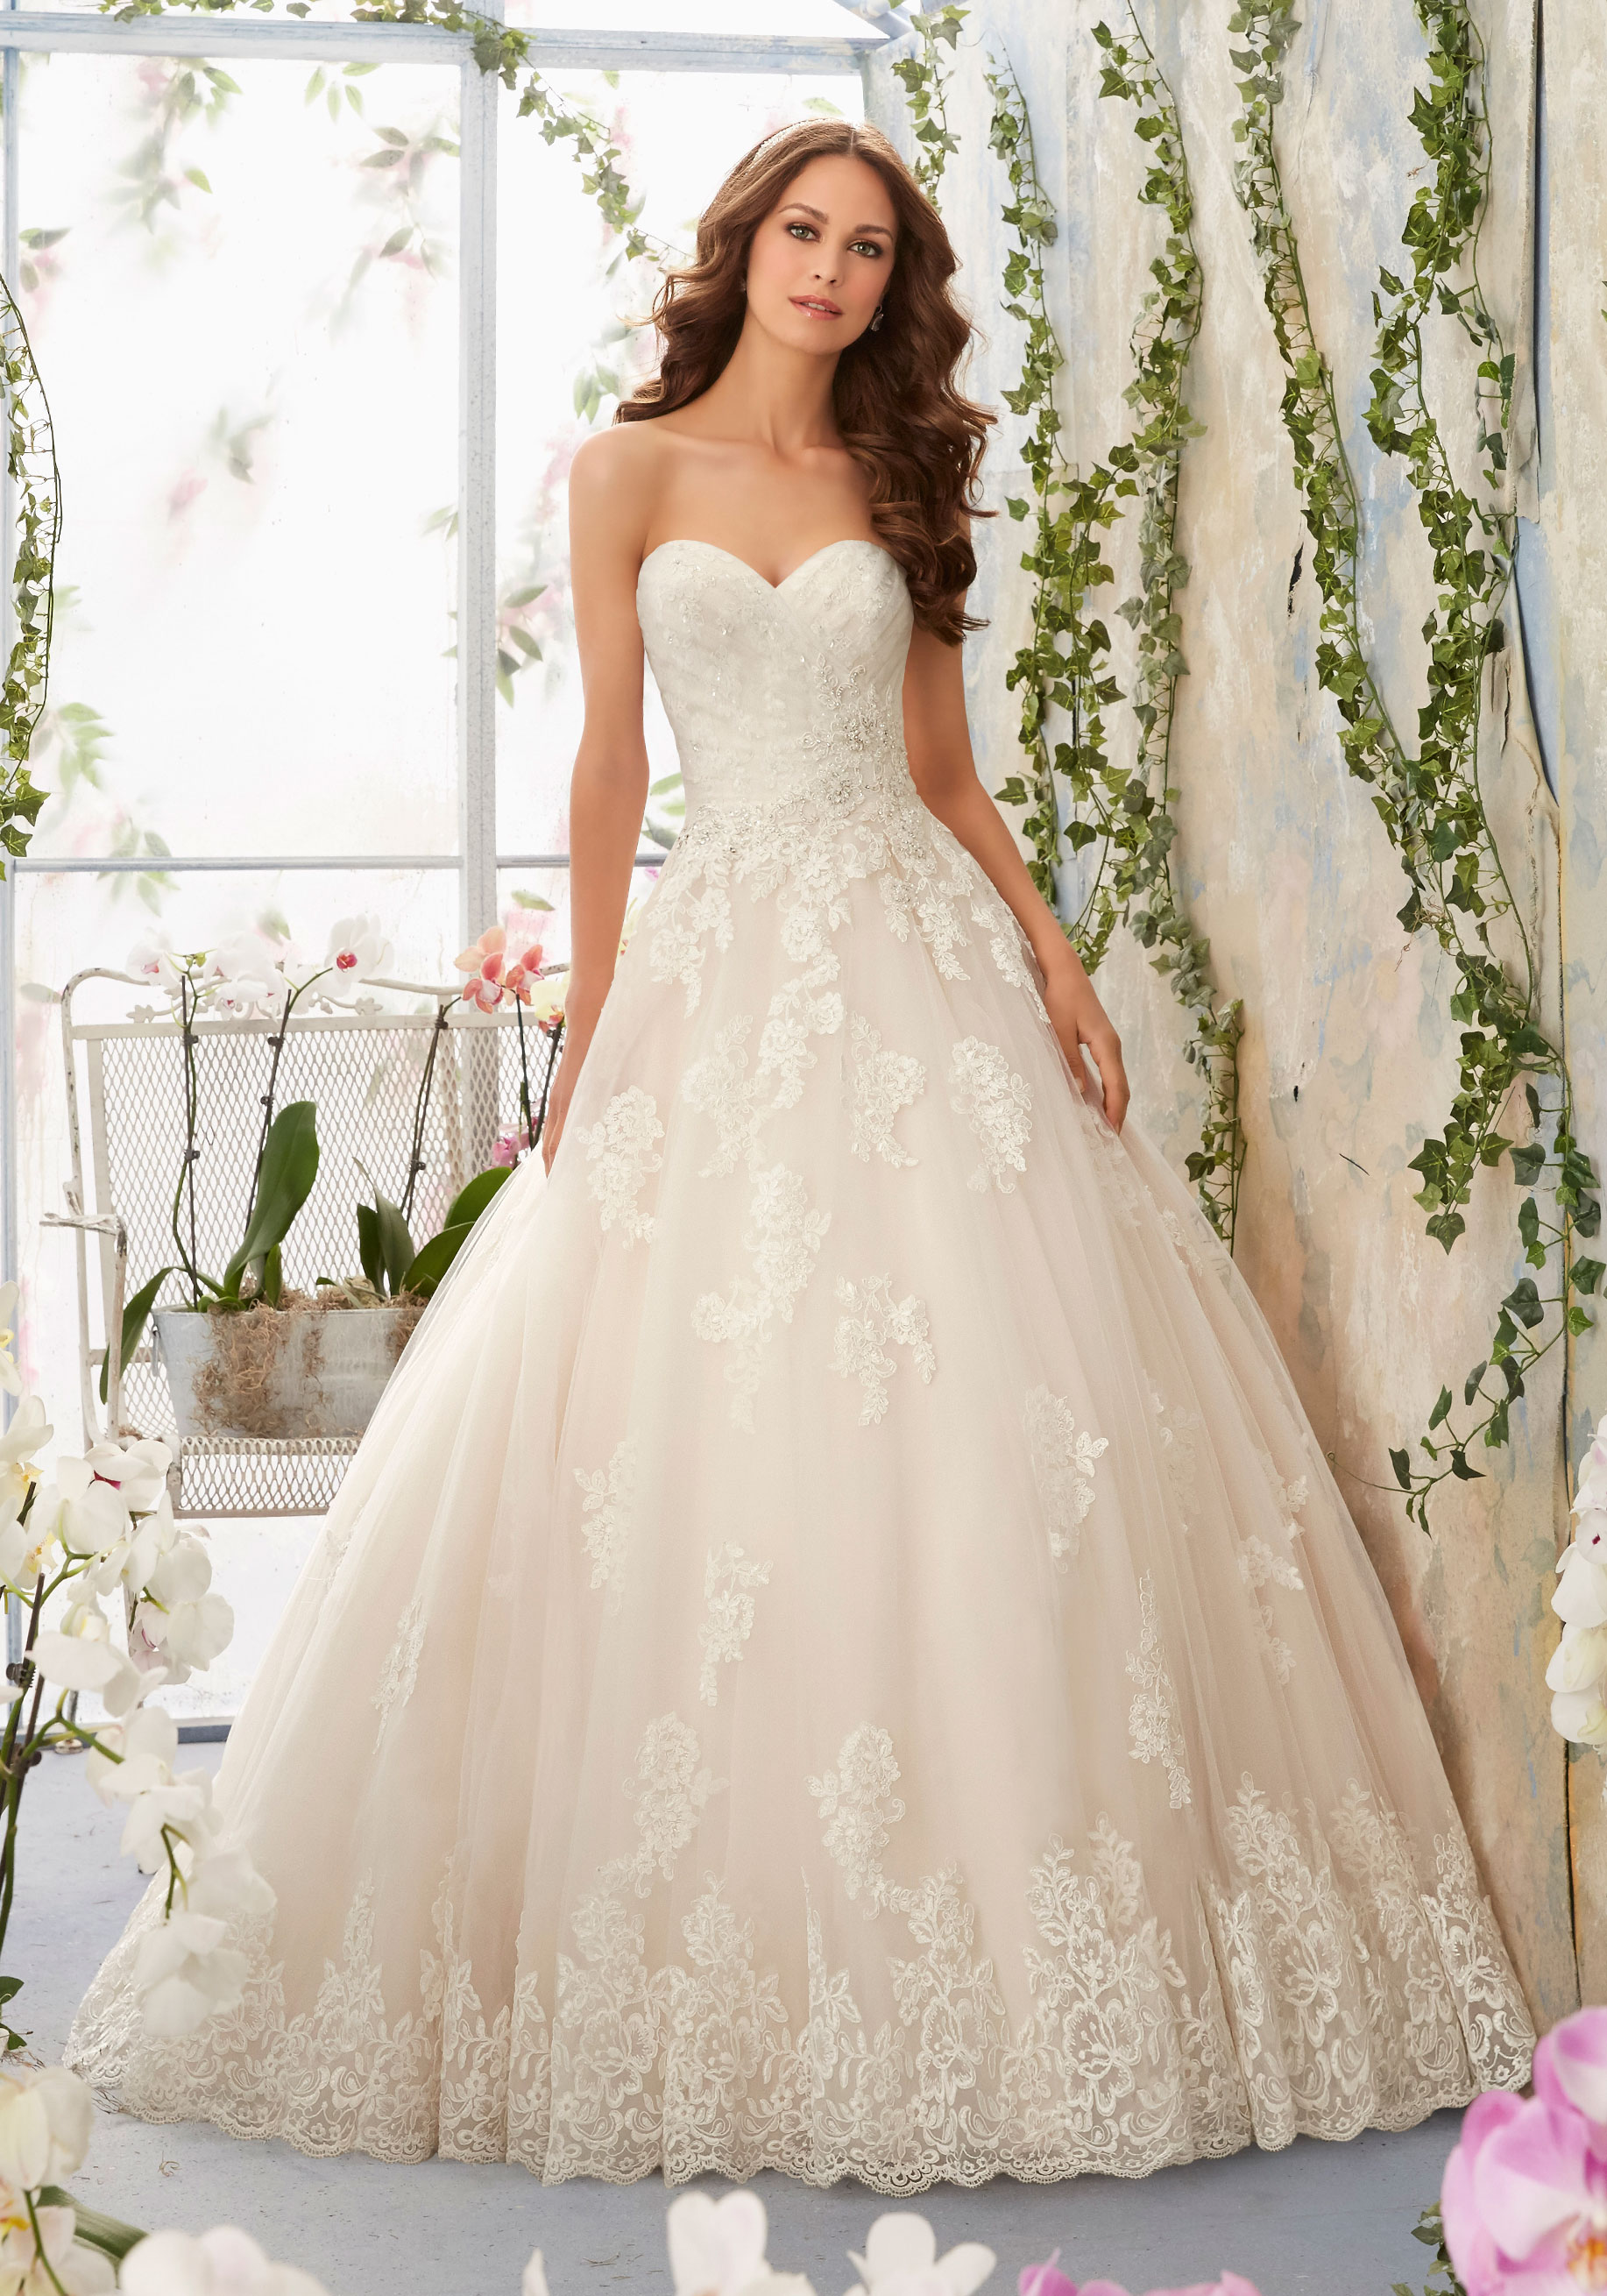 Wedding Dress Styles A Guide H1 Dress The Bride